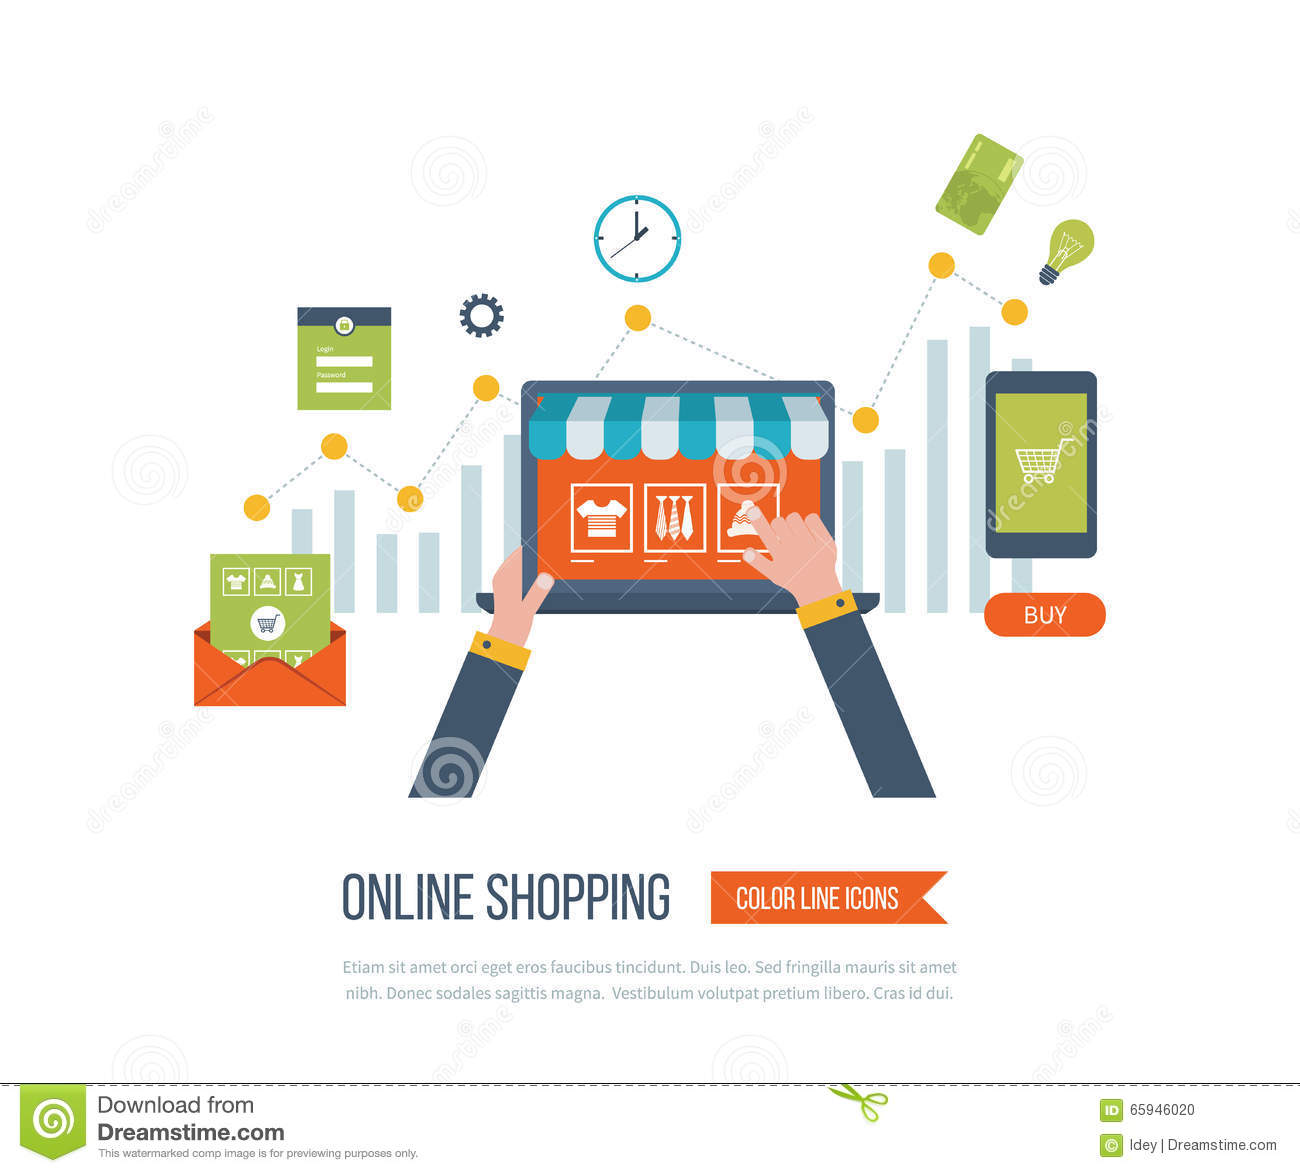 marketing strategy of shopping center New digital trends in retail shopping center marketing with tenant-focused strategies  digital and social media marketing strategy can effectively expand the .